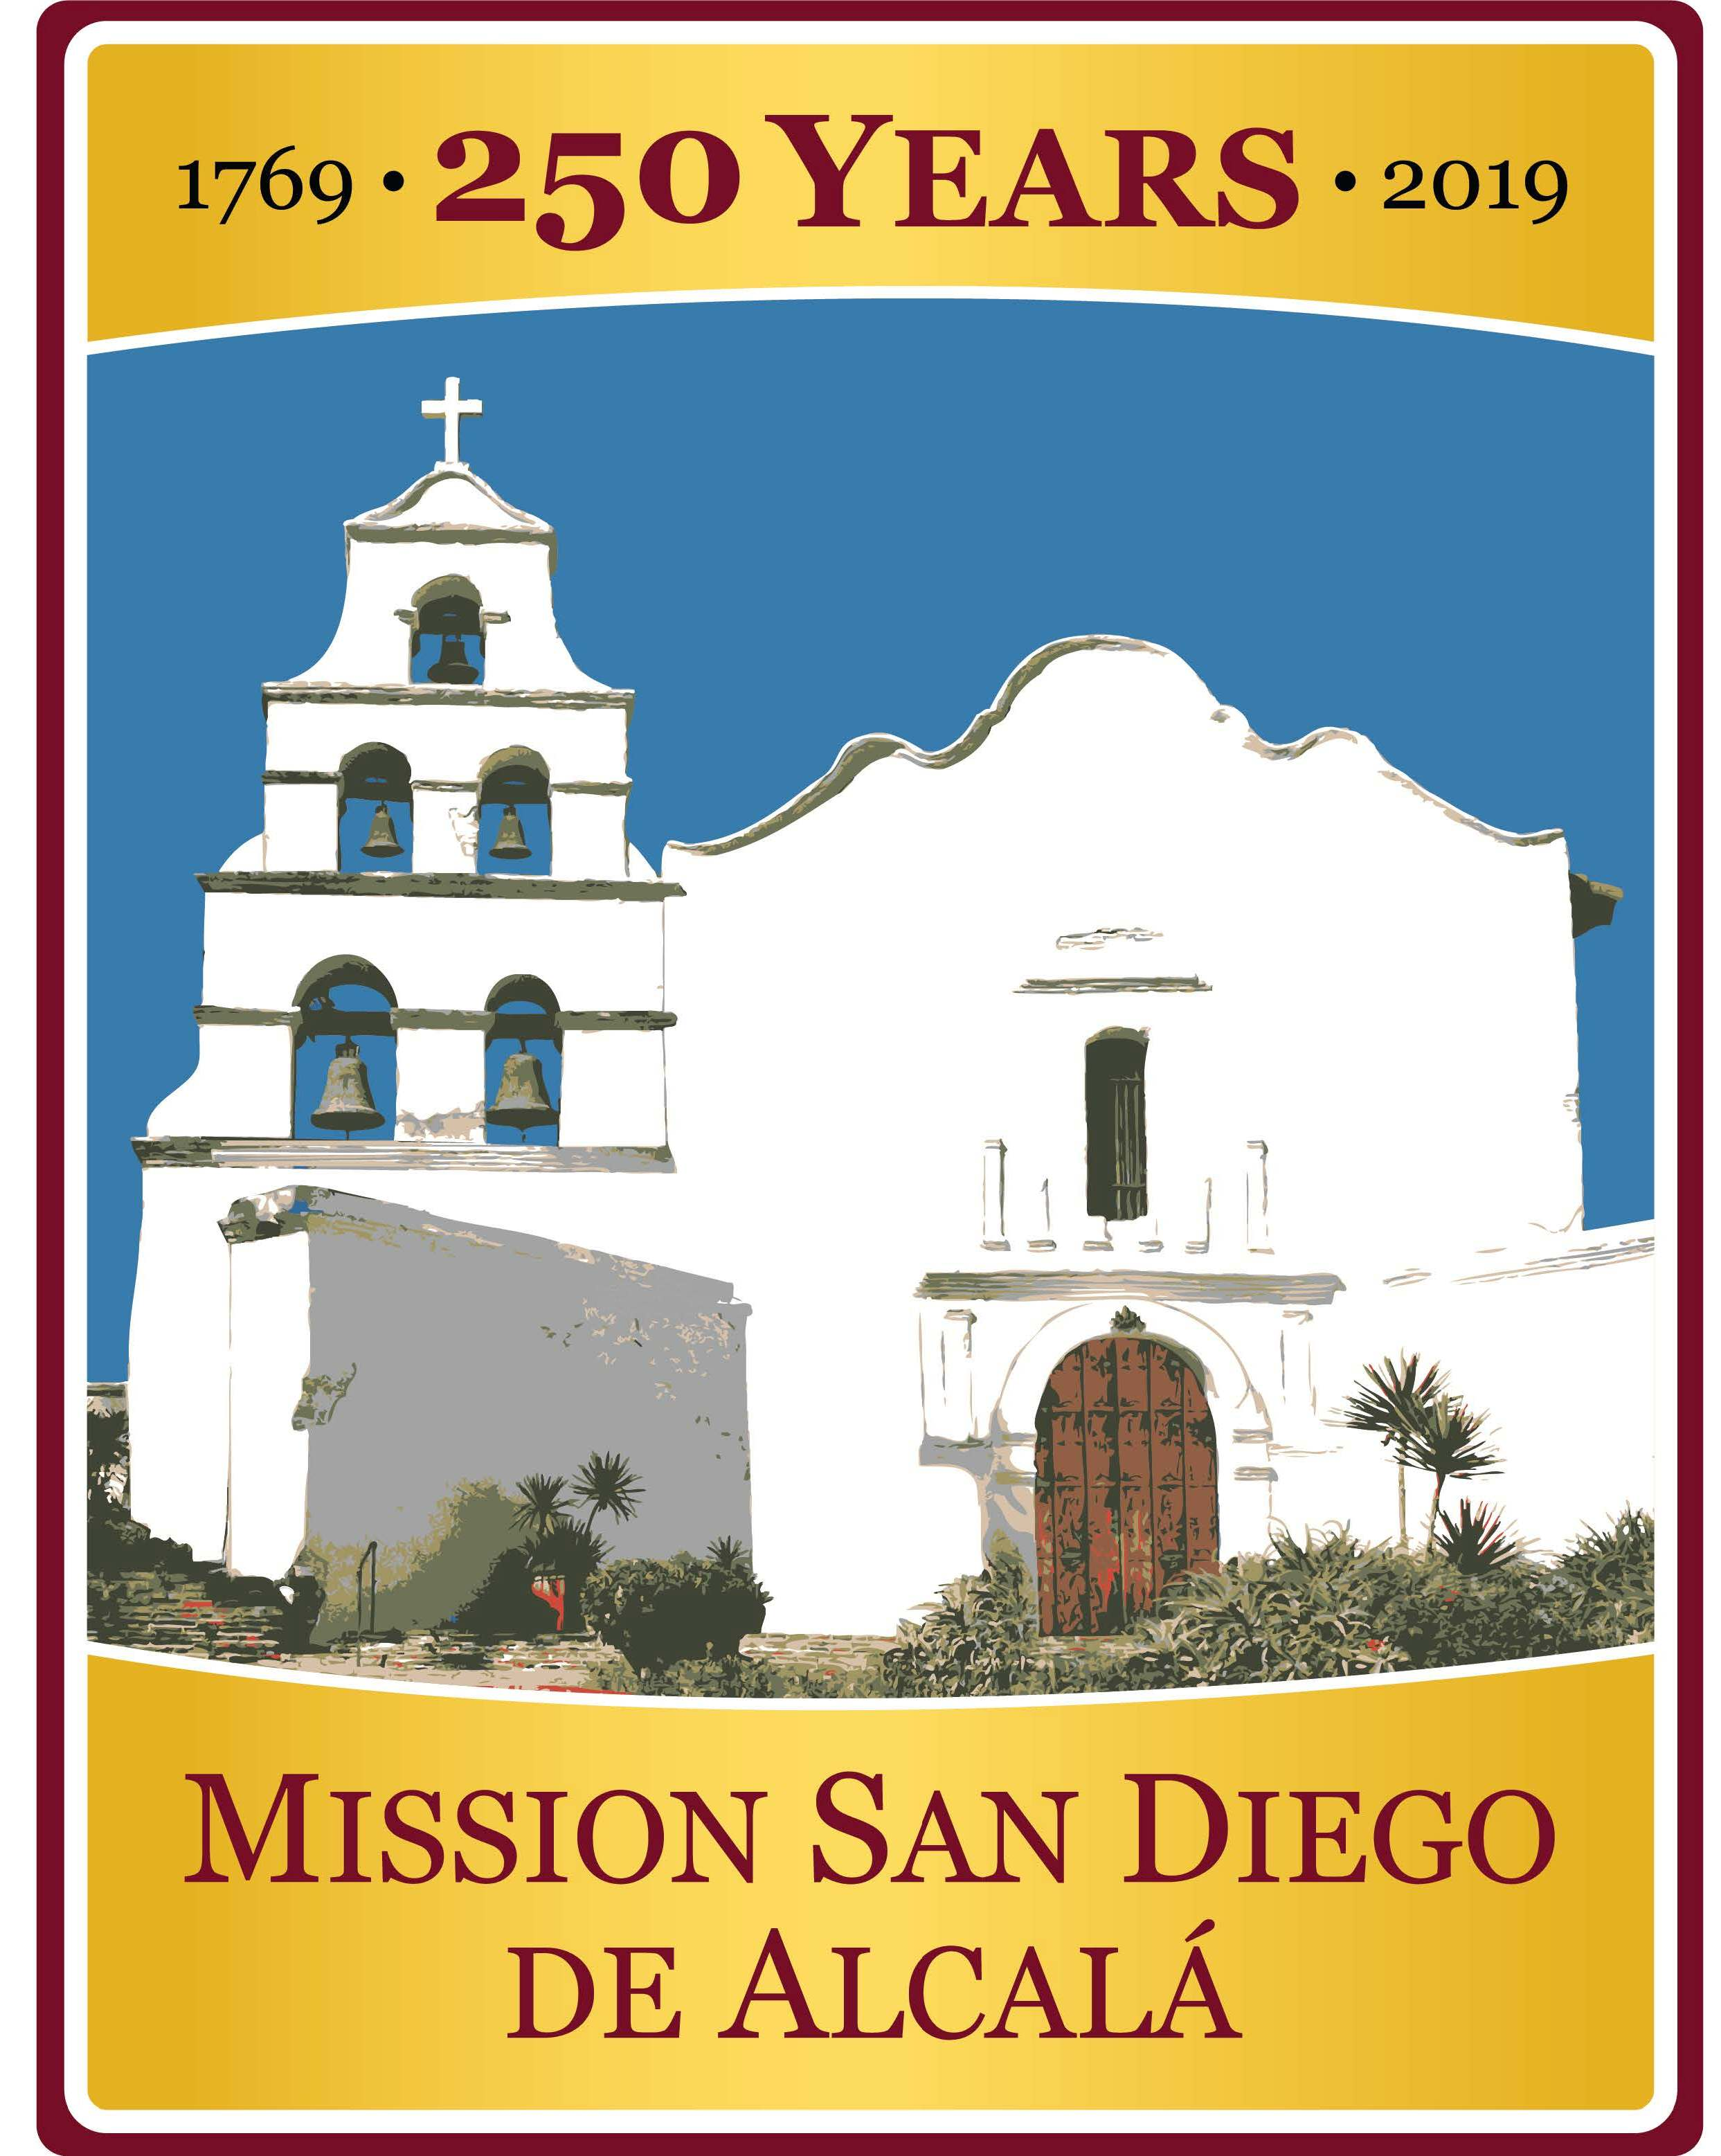 2019 Jubilee Year Pilgrimage to the Missions